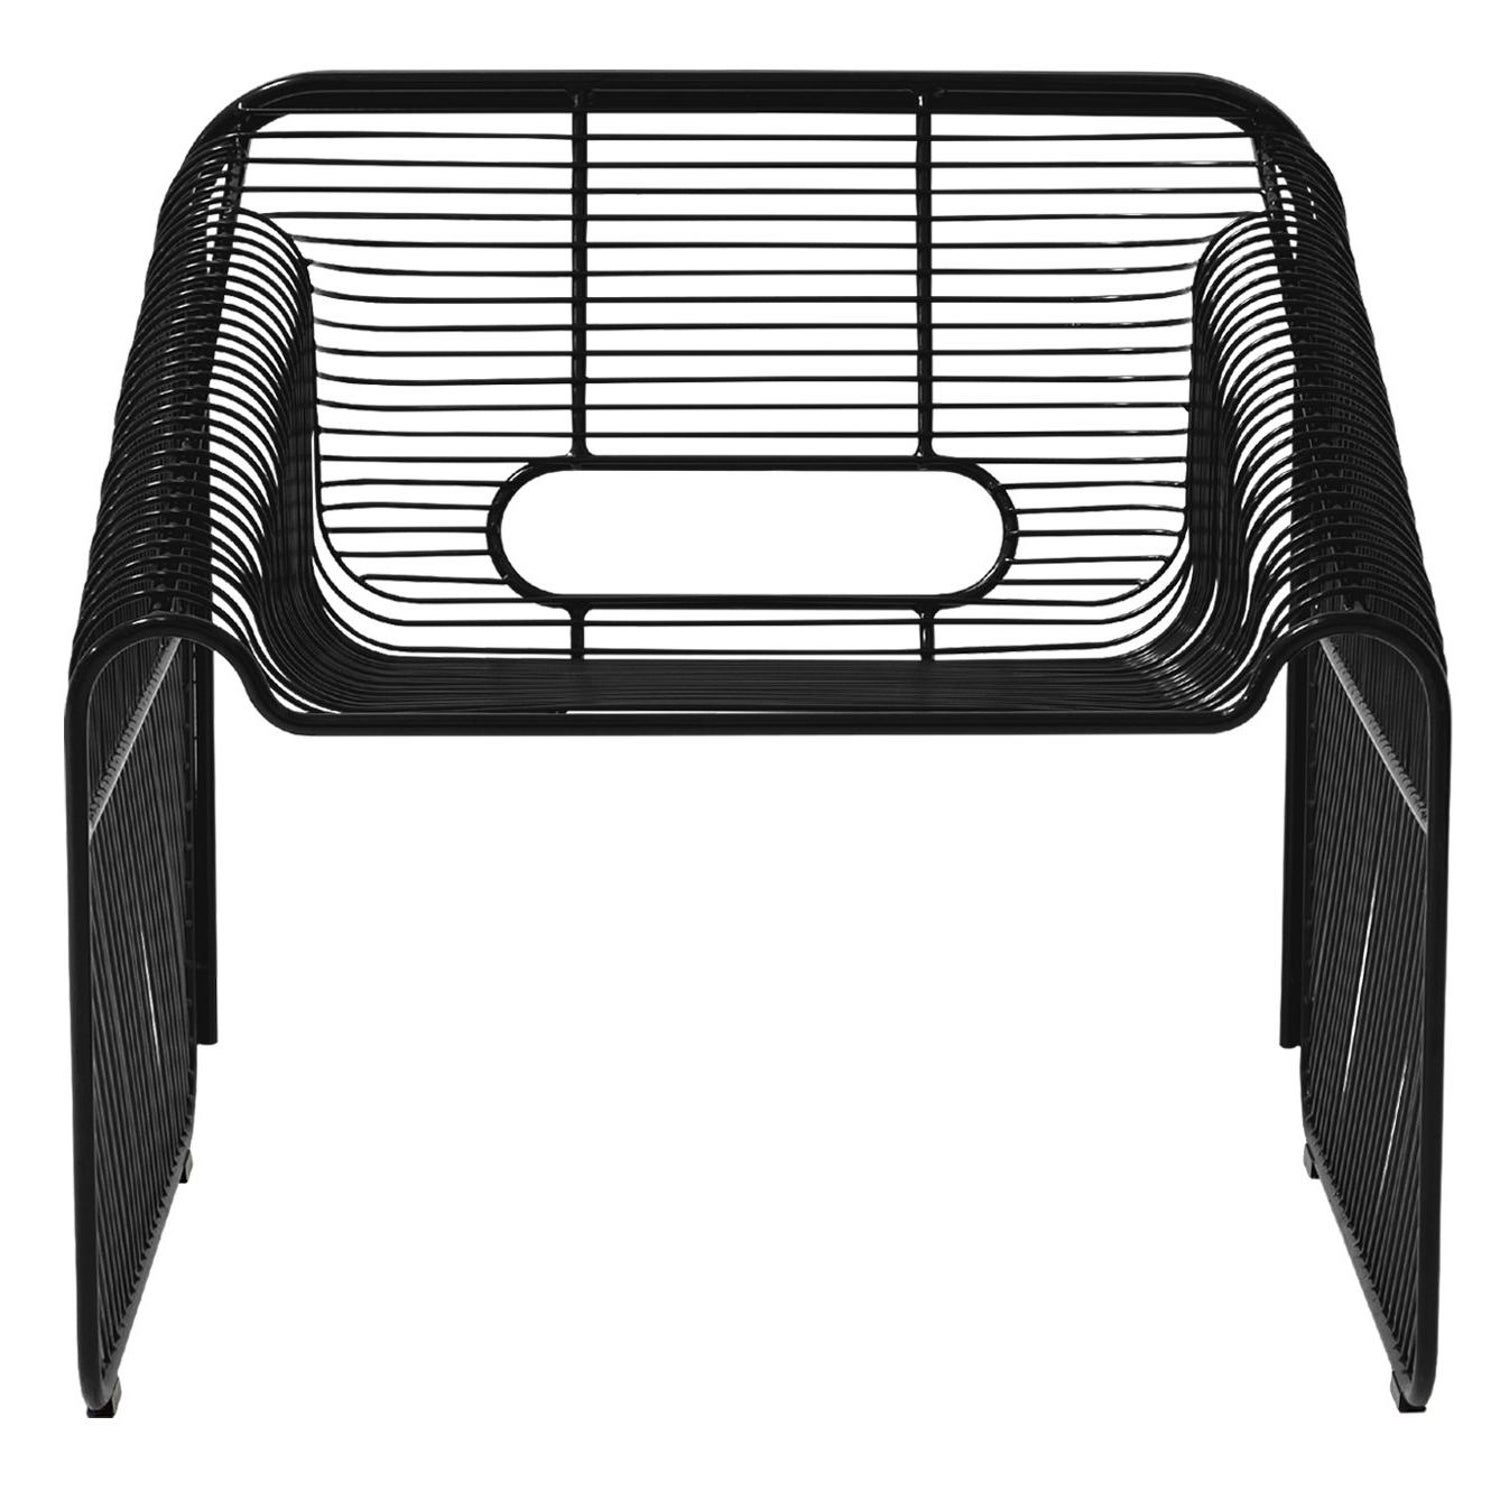 Enjoyable Modern Wire Lounge Chair Hot Seat By Bend Goods Pdpeps Interior Chair Design Pdpepsorg